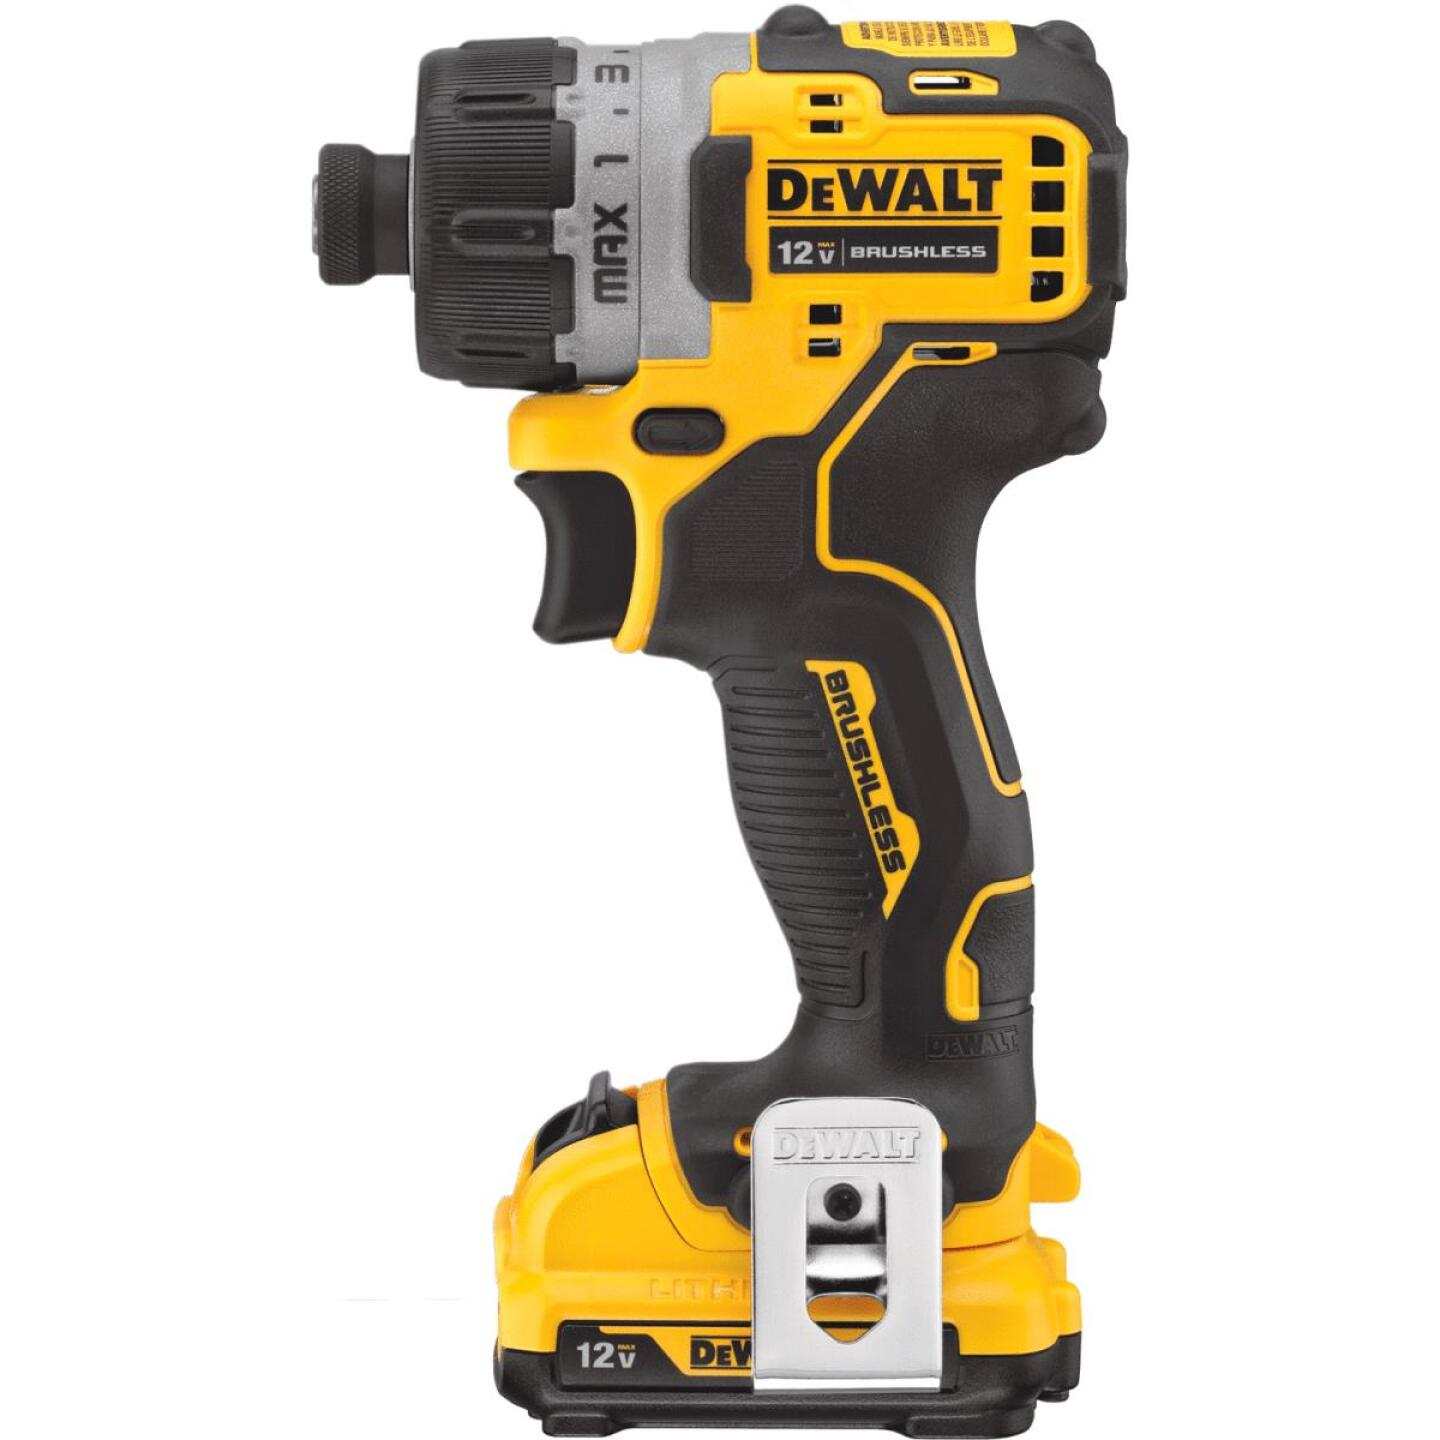 DeWalt XTREME 12V MAX Lithium-Ion 1/4 In. Brushless Cordless Screwdriver Kit Image 2